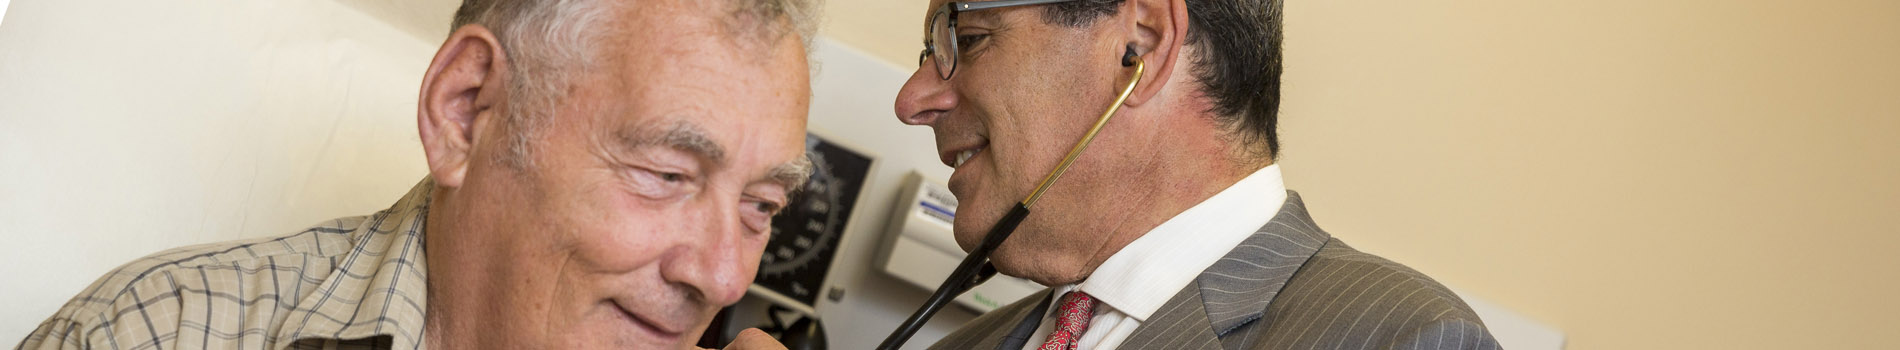 Dr. Koren listens to a patient's heart